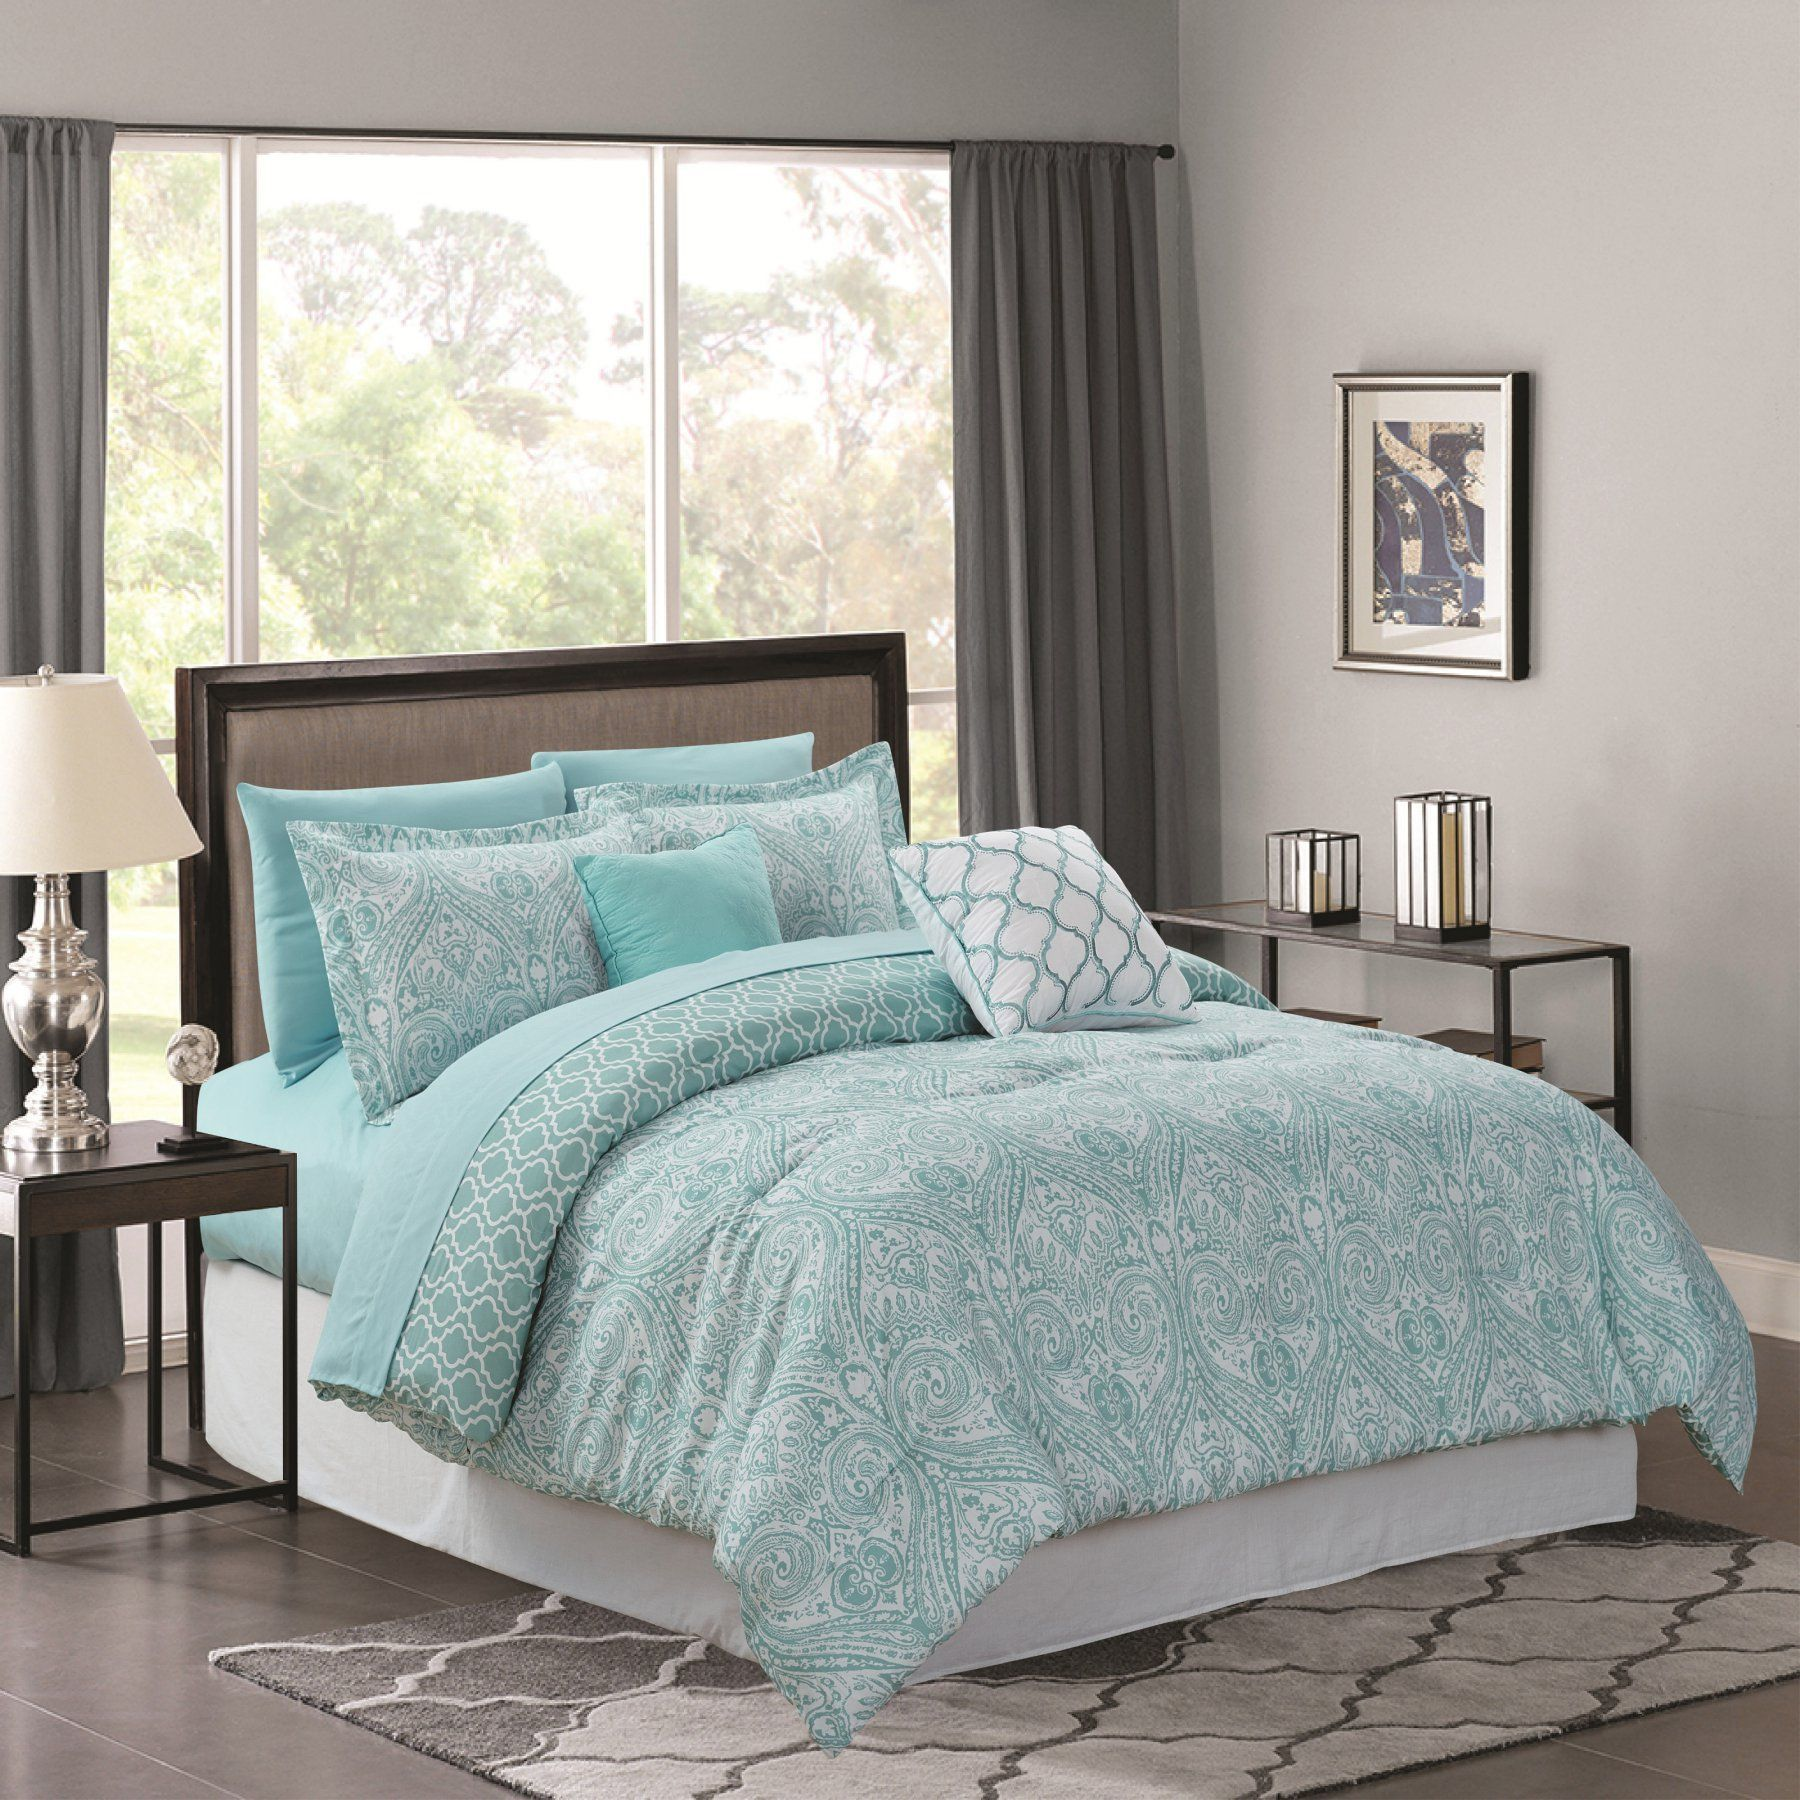 paisley cream brown comforter comforters piece set blue bedding and